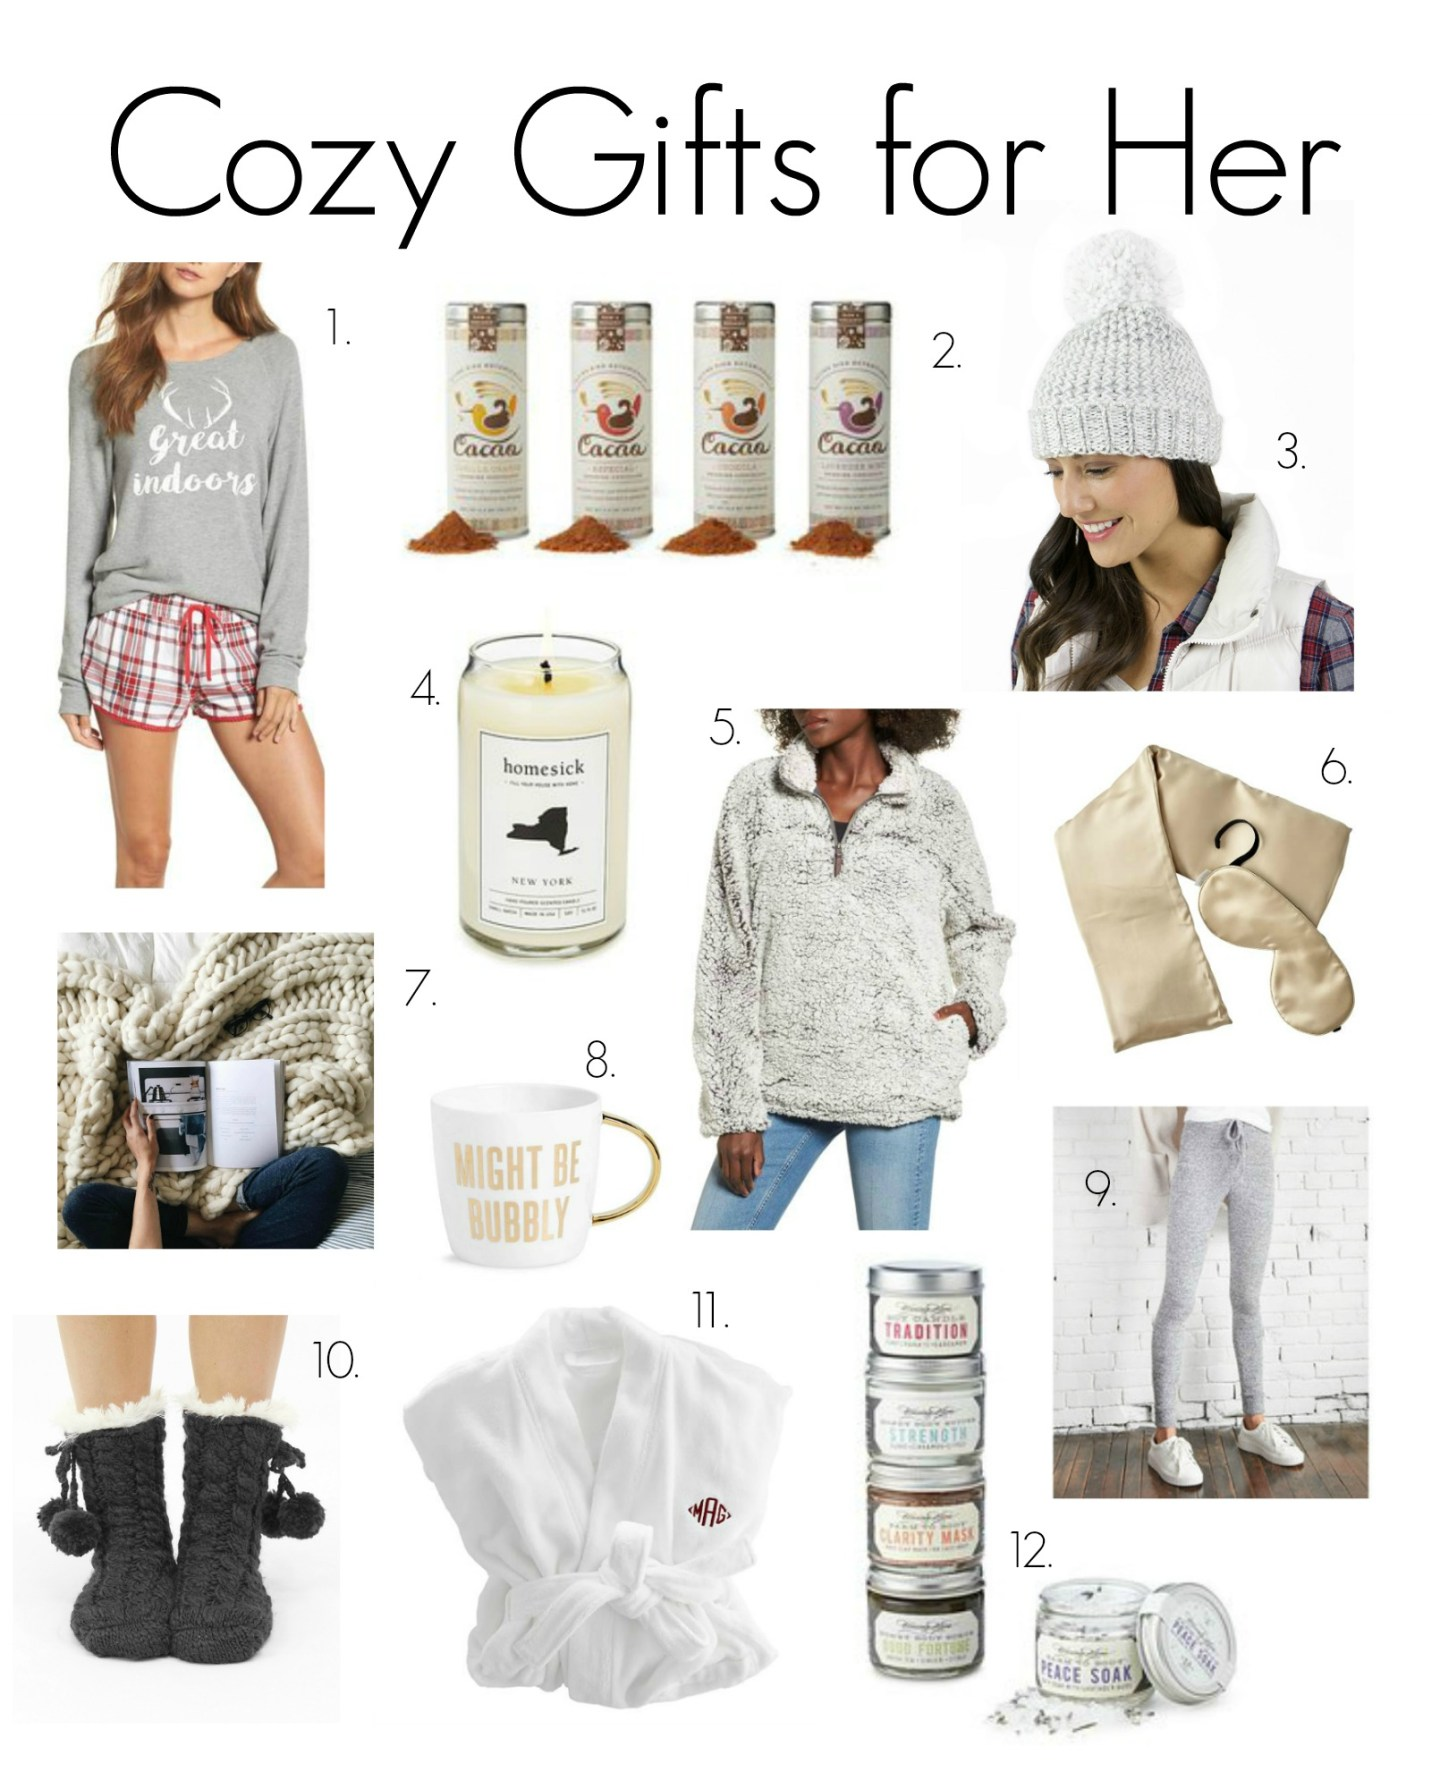 Gift Guide No. 2: Cozy Gifts for Her